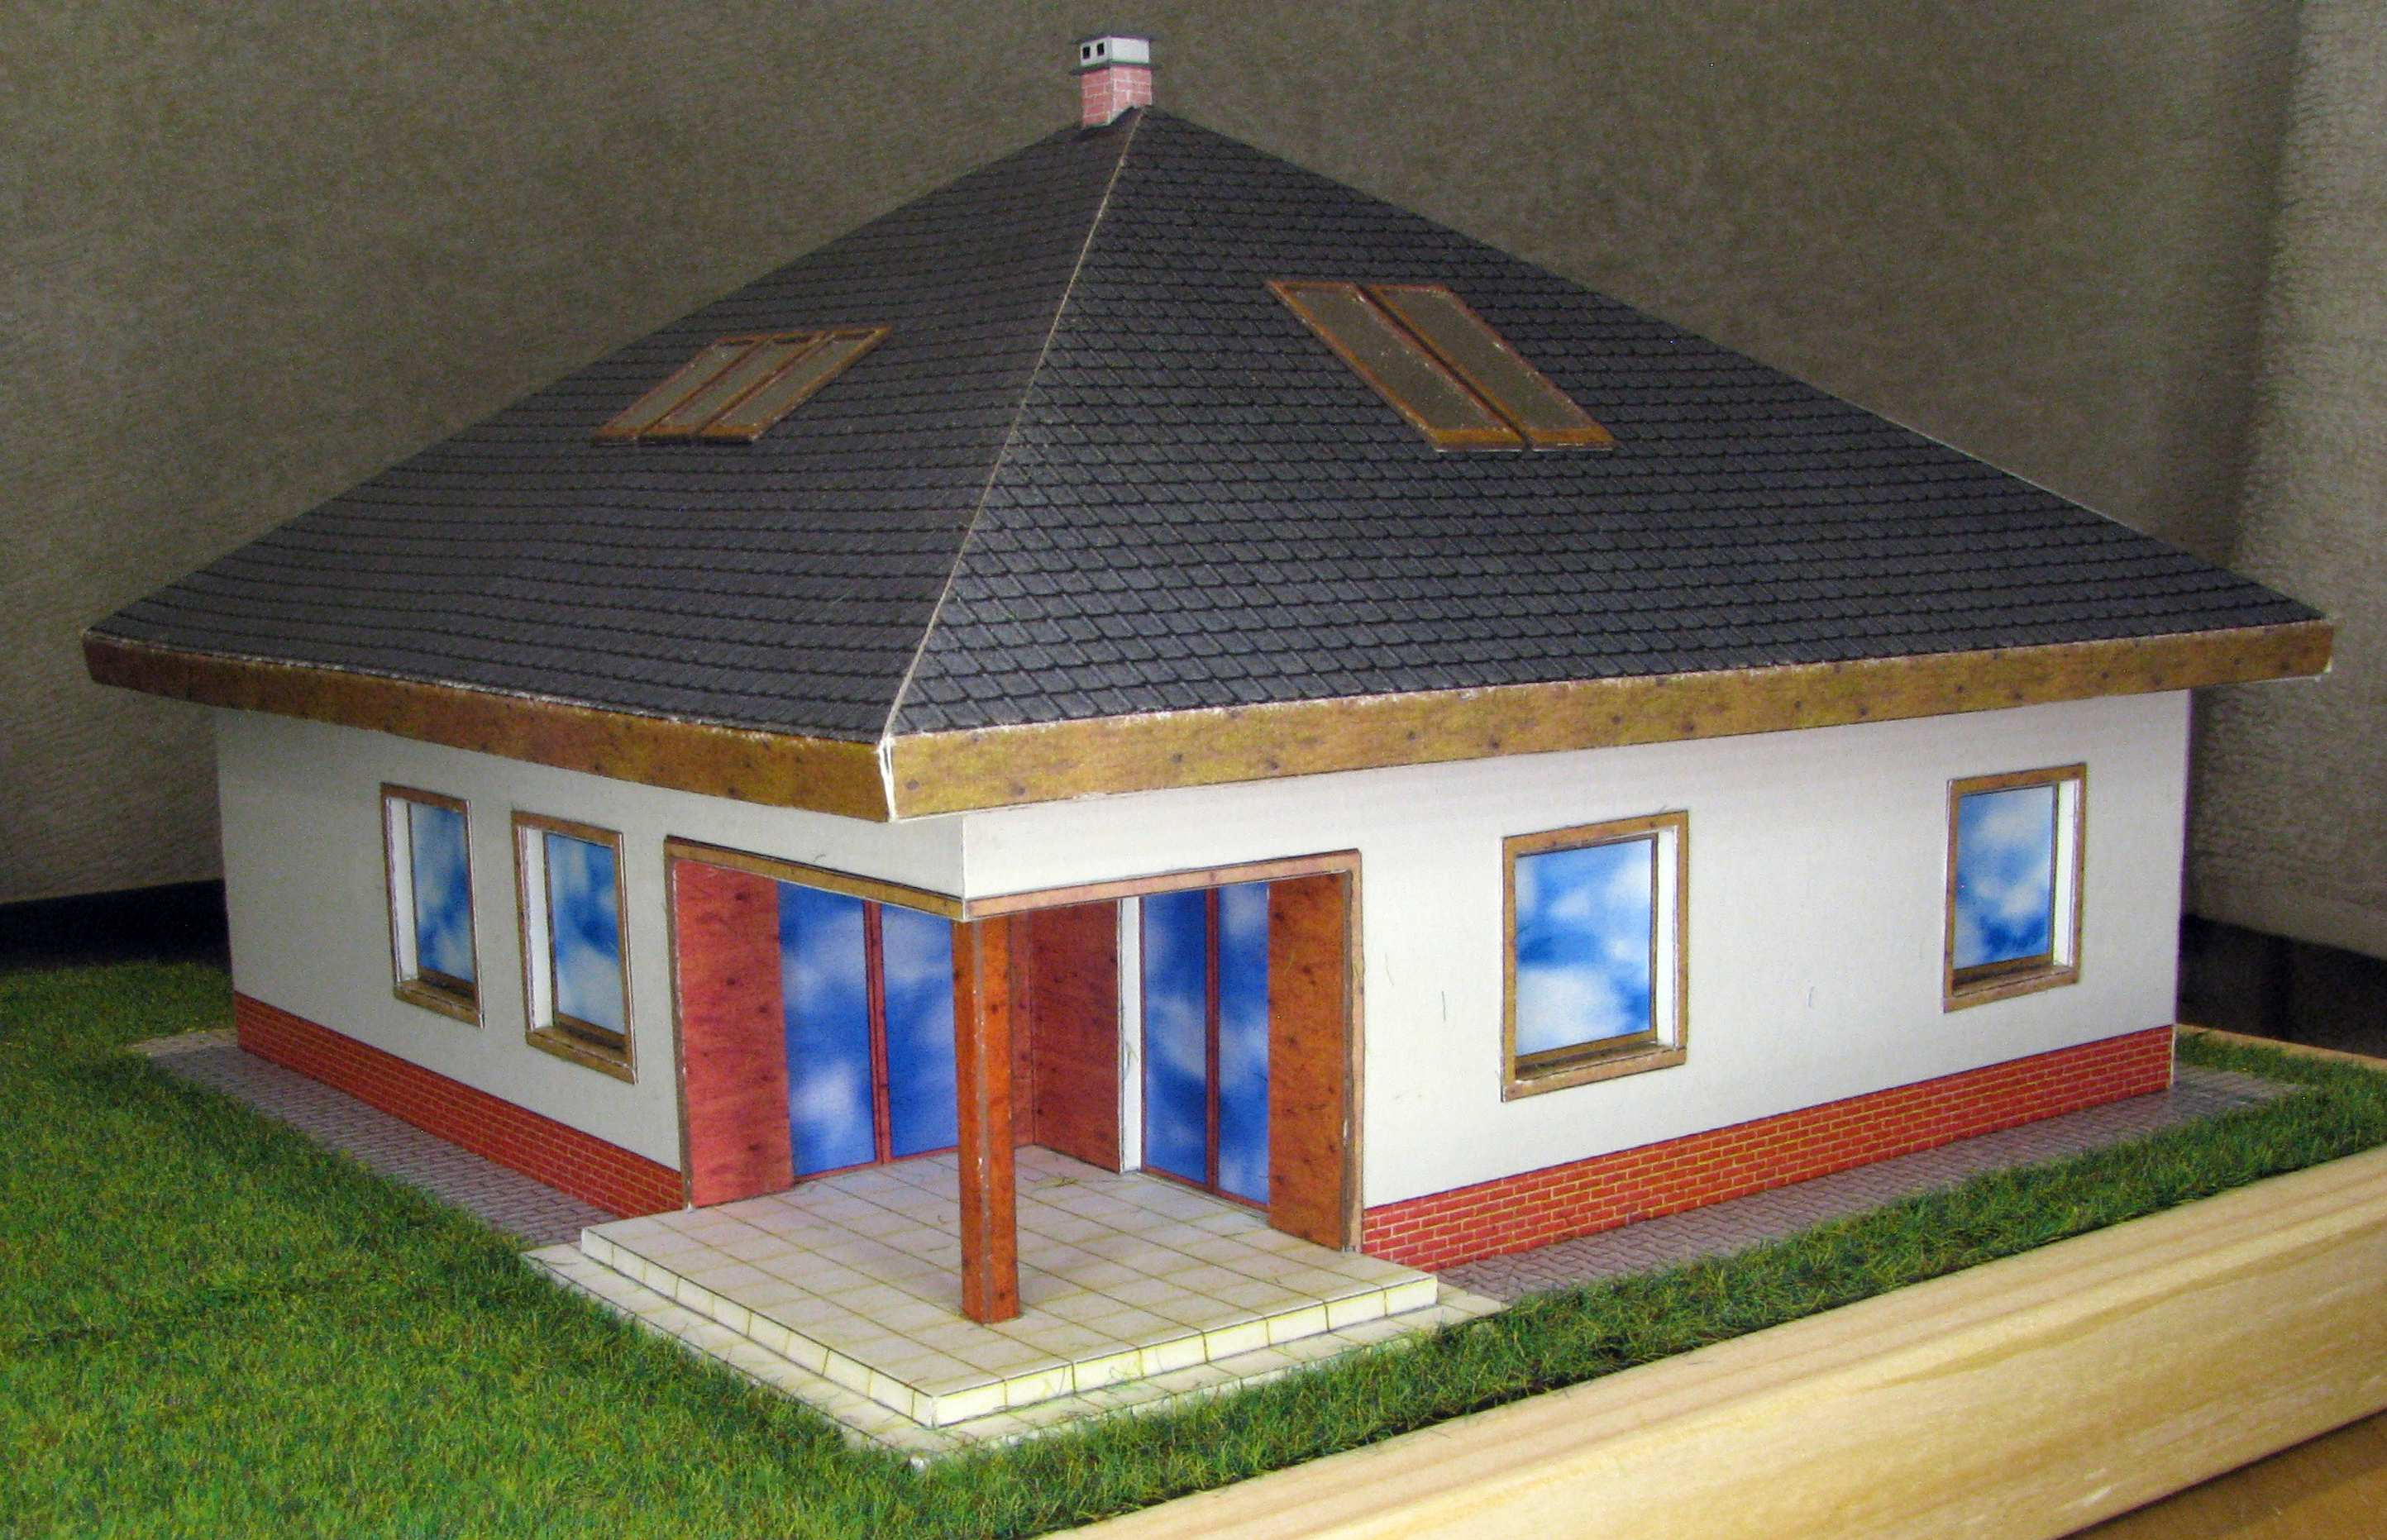 1:87 House by Pawel (Paper model)